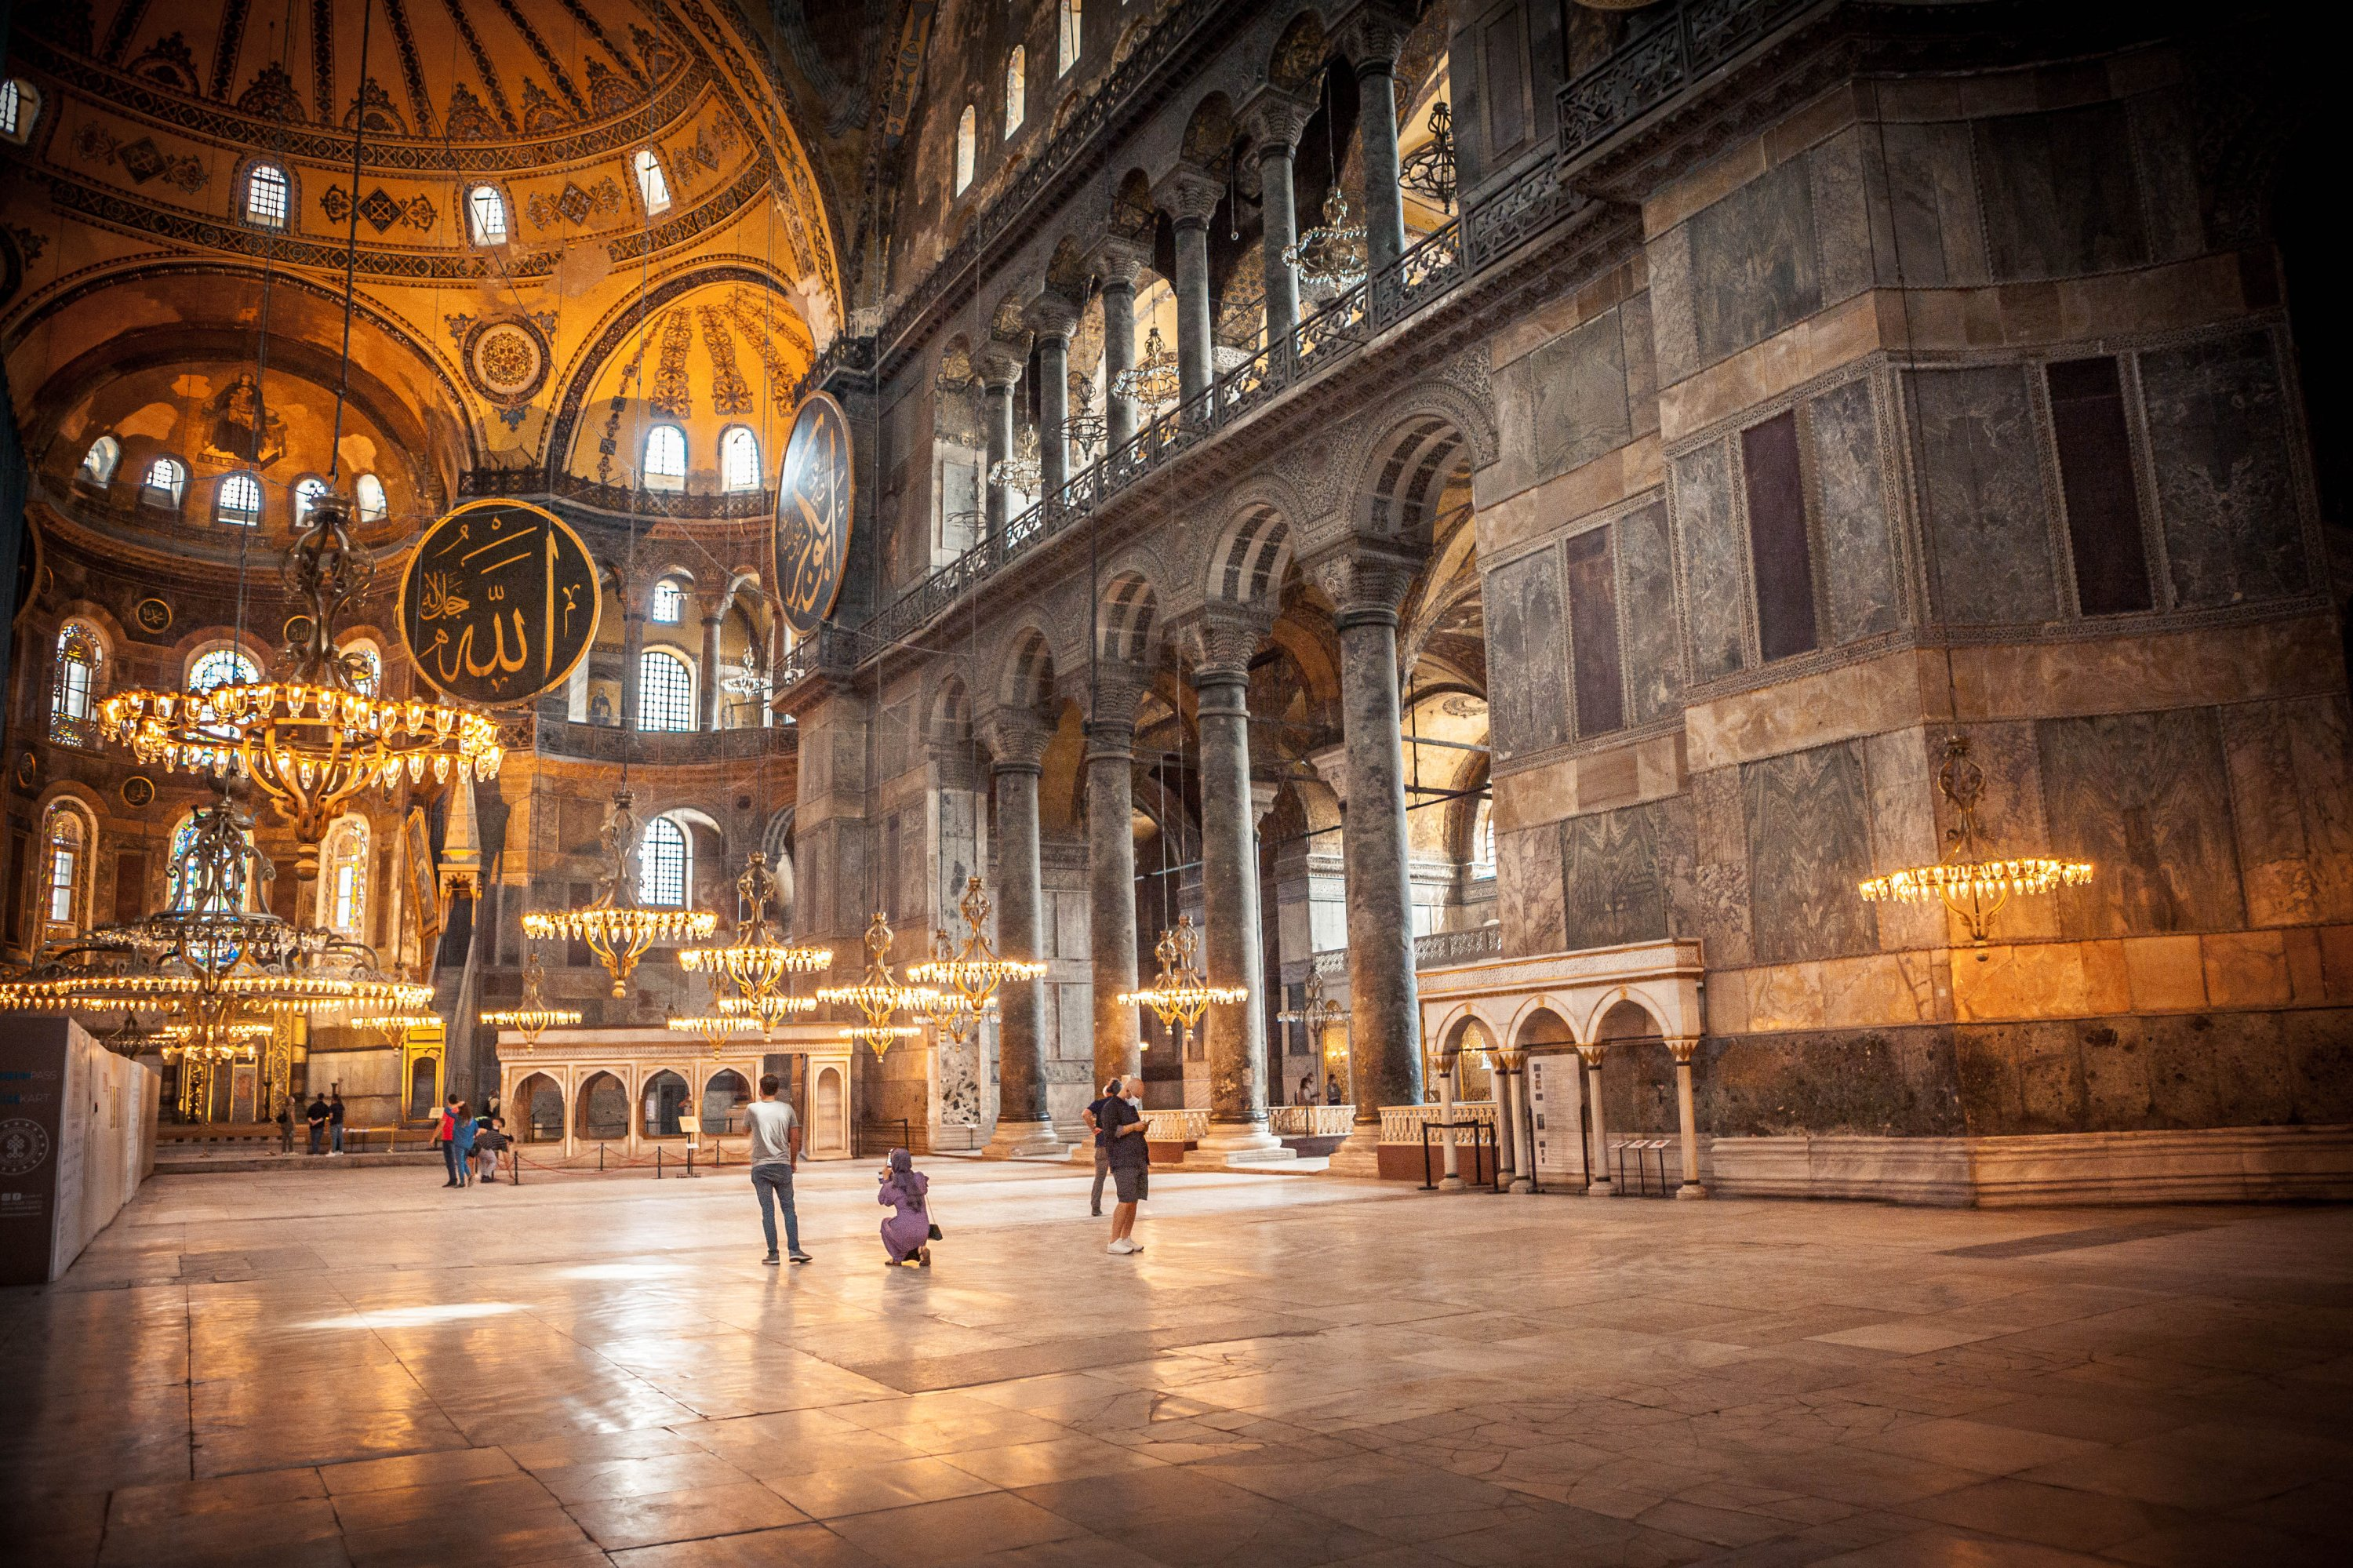 A photo from the interior of Hagia Sophia. (Photo by Hatice Çınar)